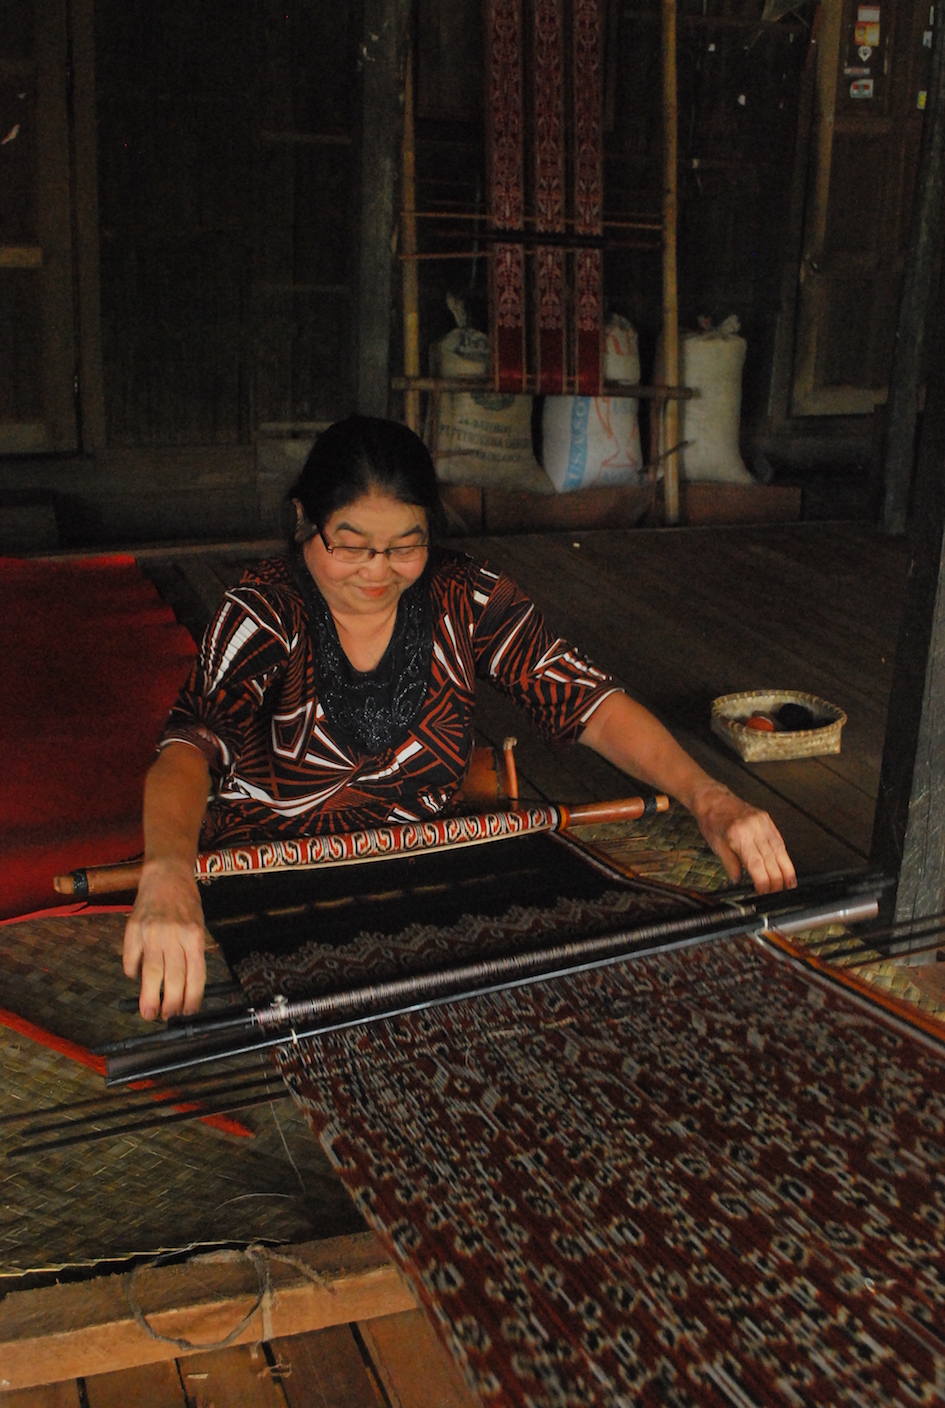 Craftswoman from Sintang Regency, Kalimantan, Indonesia, working on her loom making ikat cloth.